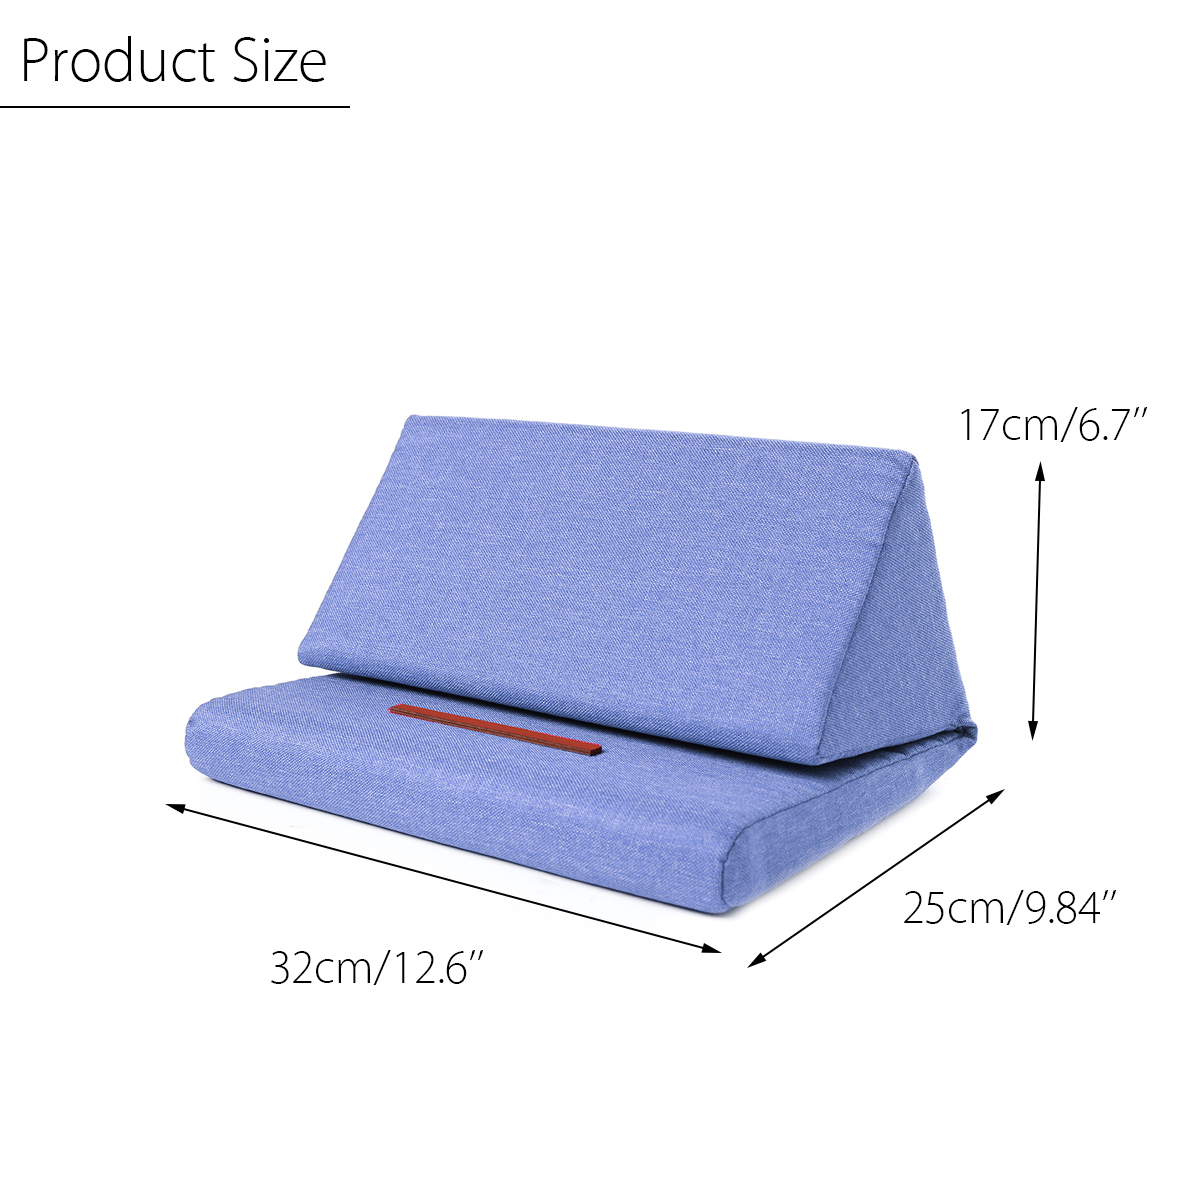 Oreiller-Coussin-Support-Stand-Reste-Tablette-Livre-Mousse-Pliable-Protection